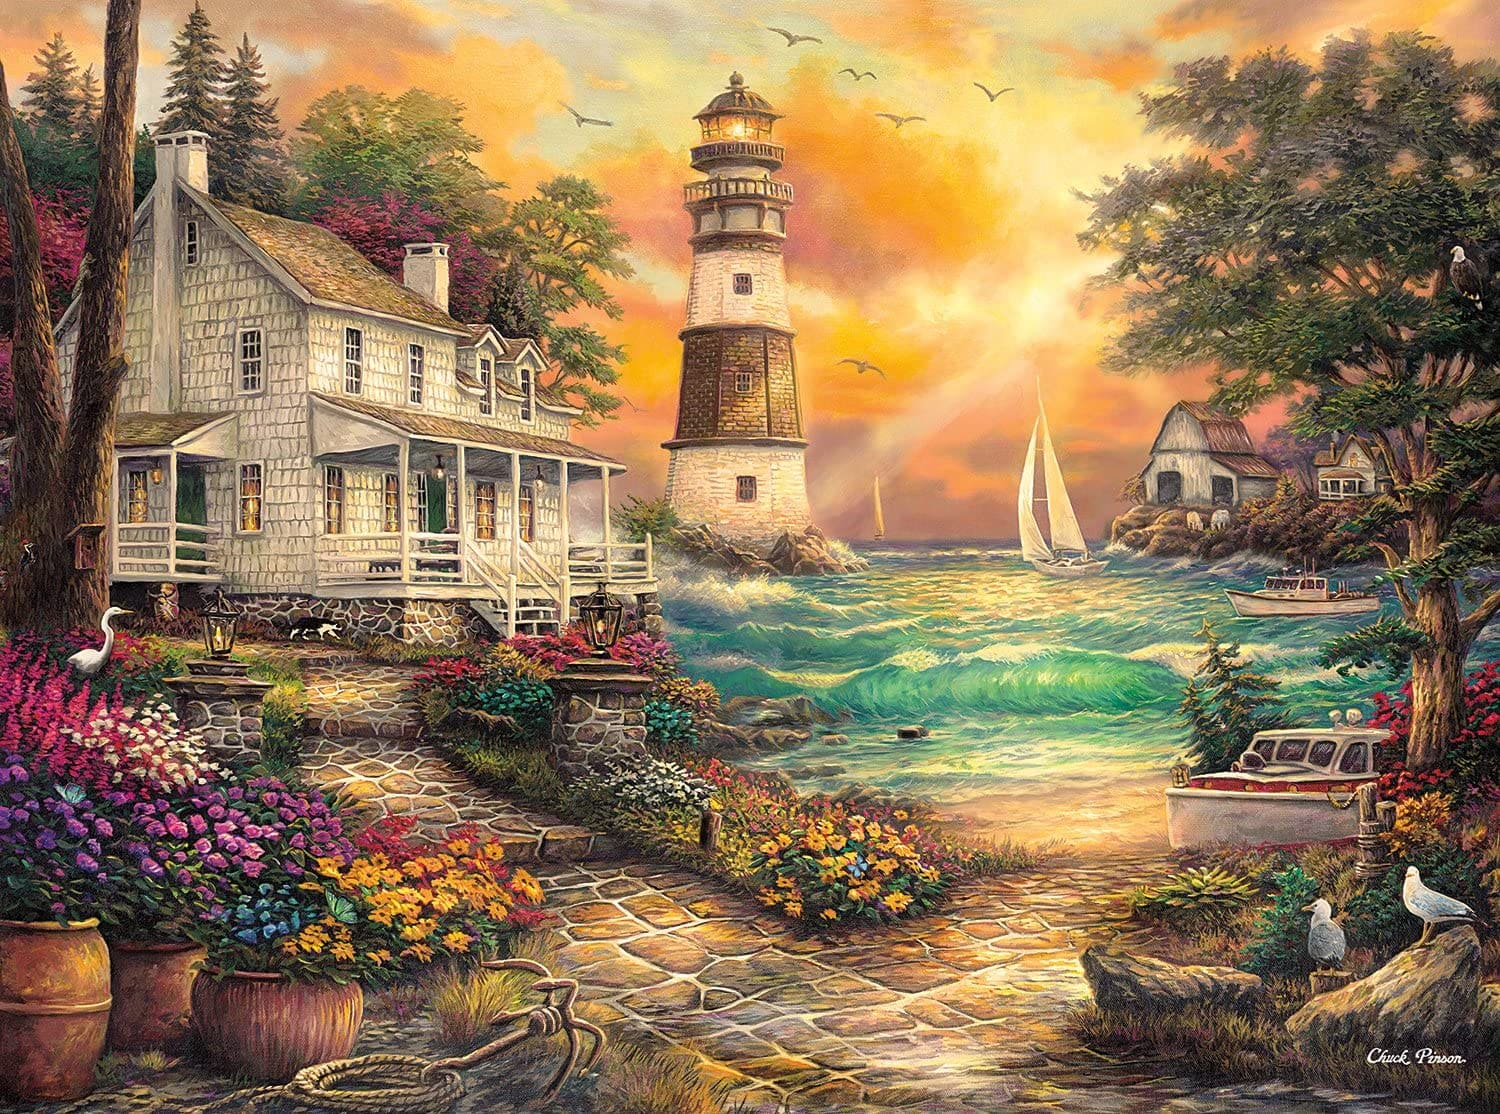 1000-Piece Buffalo Games Chuck Pinson - Cottage By The Sea Jigsaw Puzzle $9 + Free Shipping w/ Prime